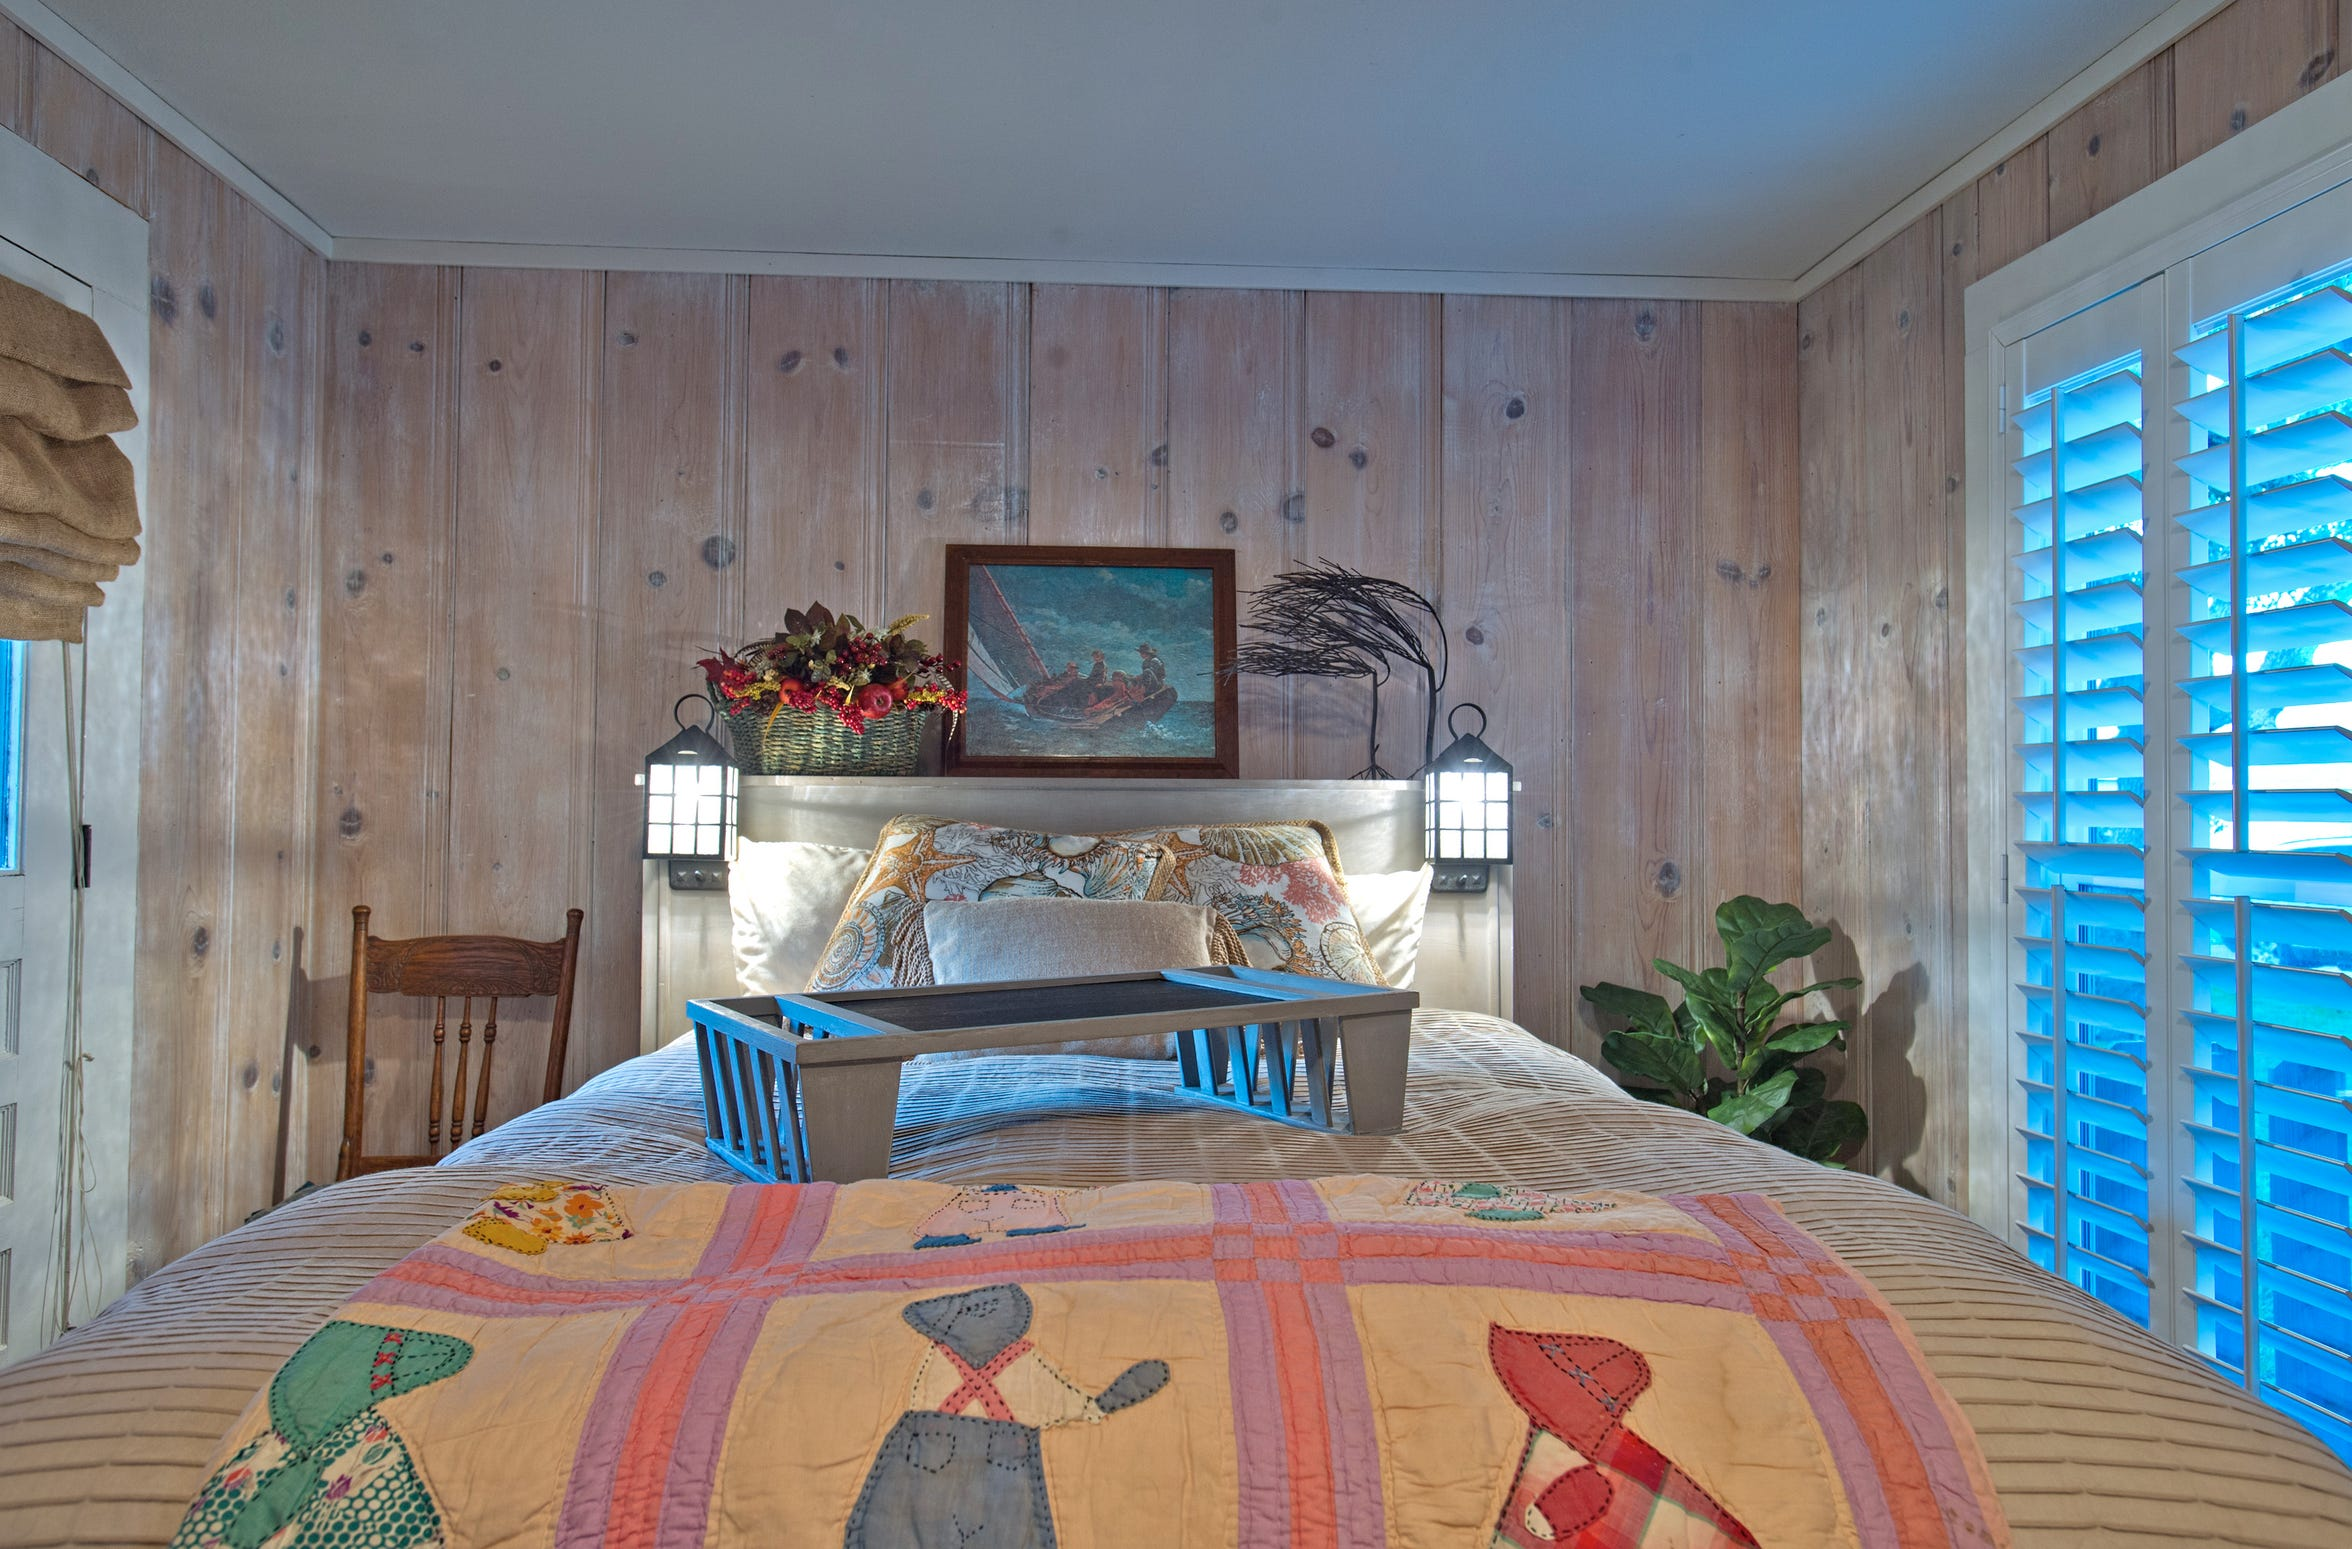 White washed knotty pine paneling surround the bed in the master bedroom creating a peaceful retreat